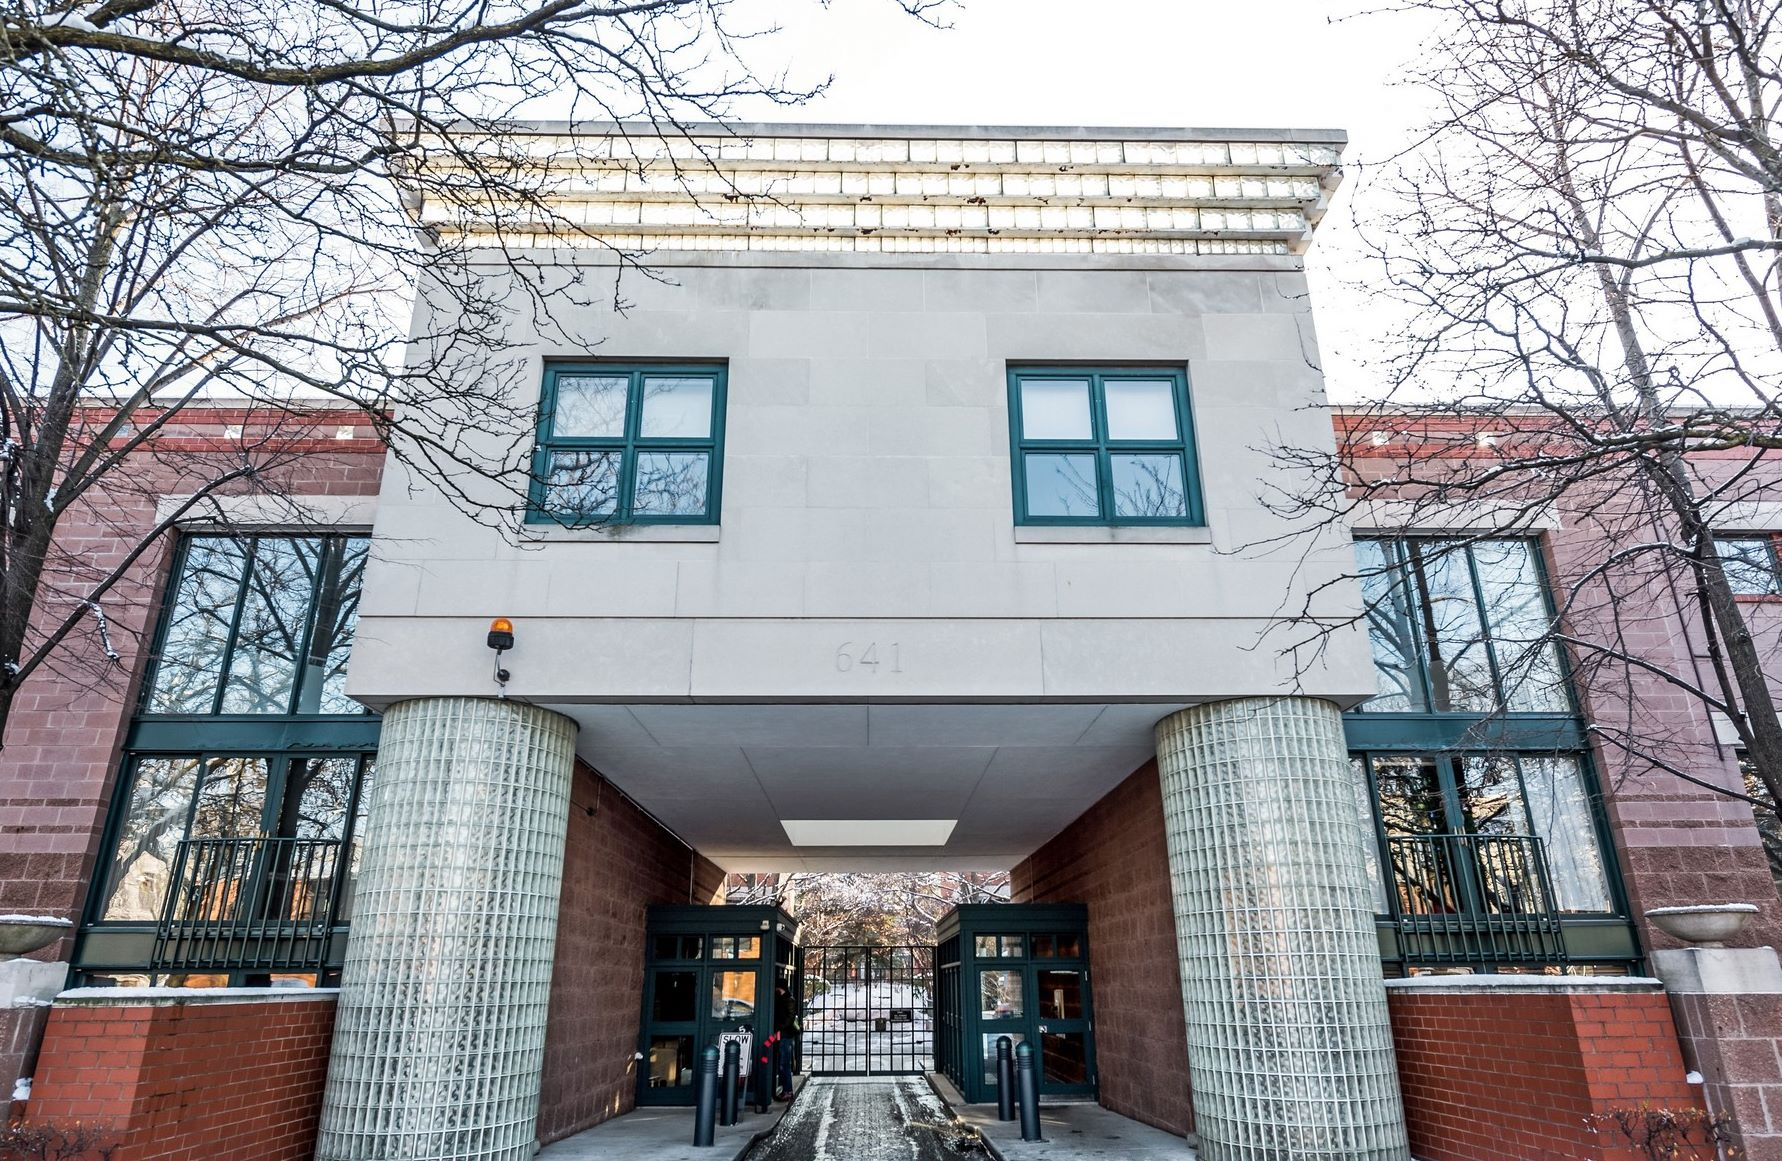 Moradia em banda para Venda às Luxury Four Bedroom Townhome 641 W Willow Street Unit 138 Lincoln Park, Chicago, Illinois, 60614 Estados Unidos